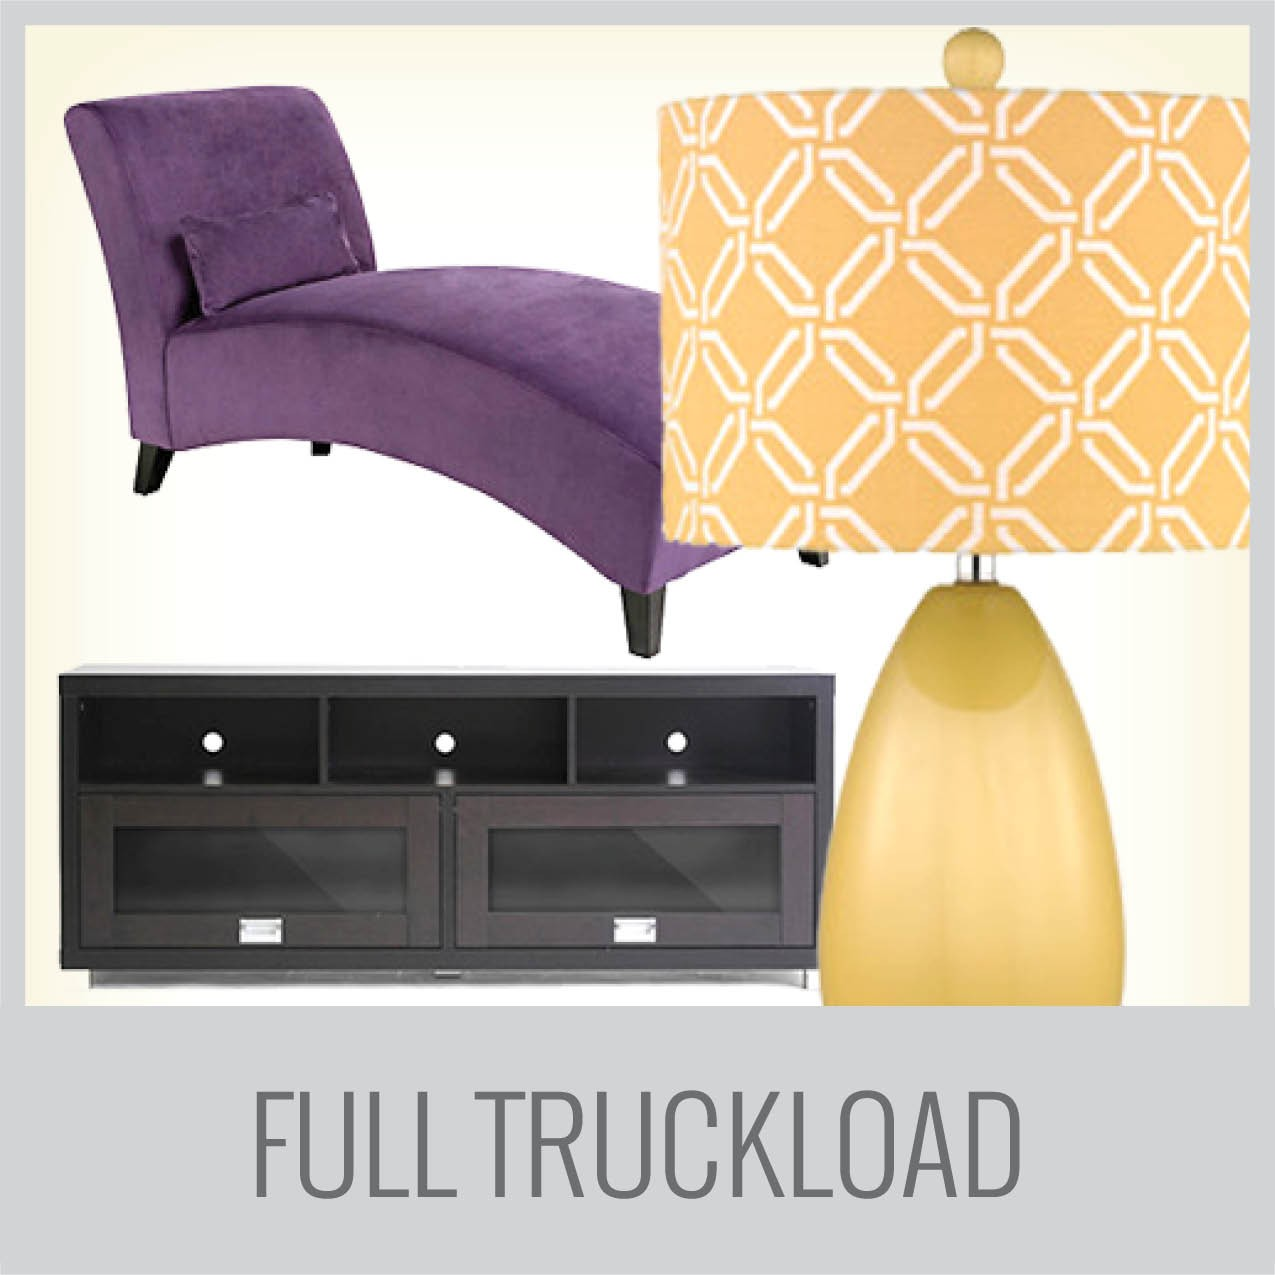 http://wayfair.bstocksolutions.com/